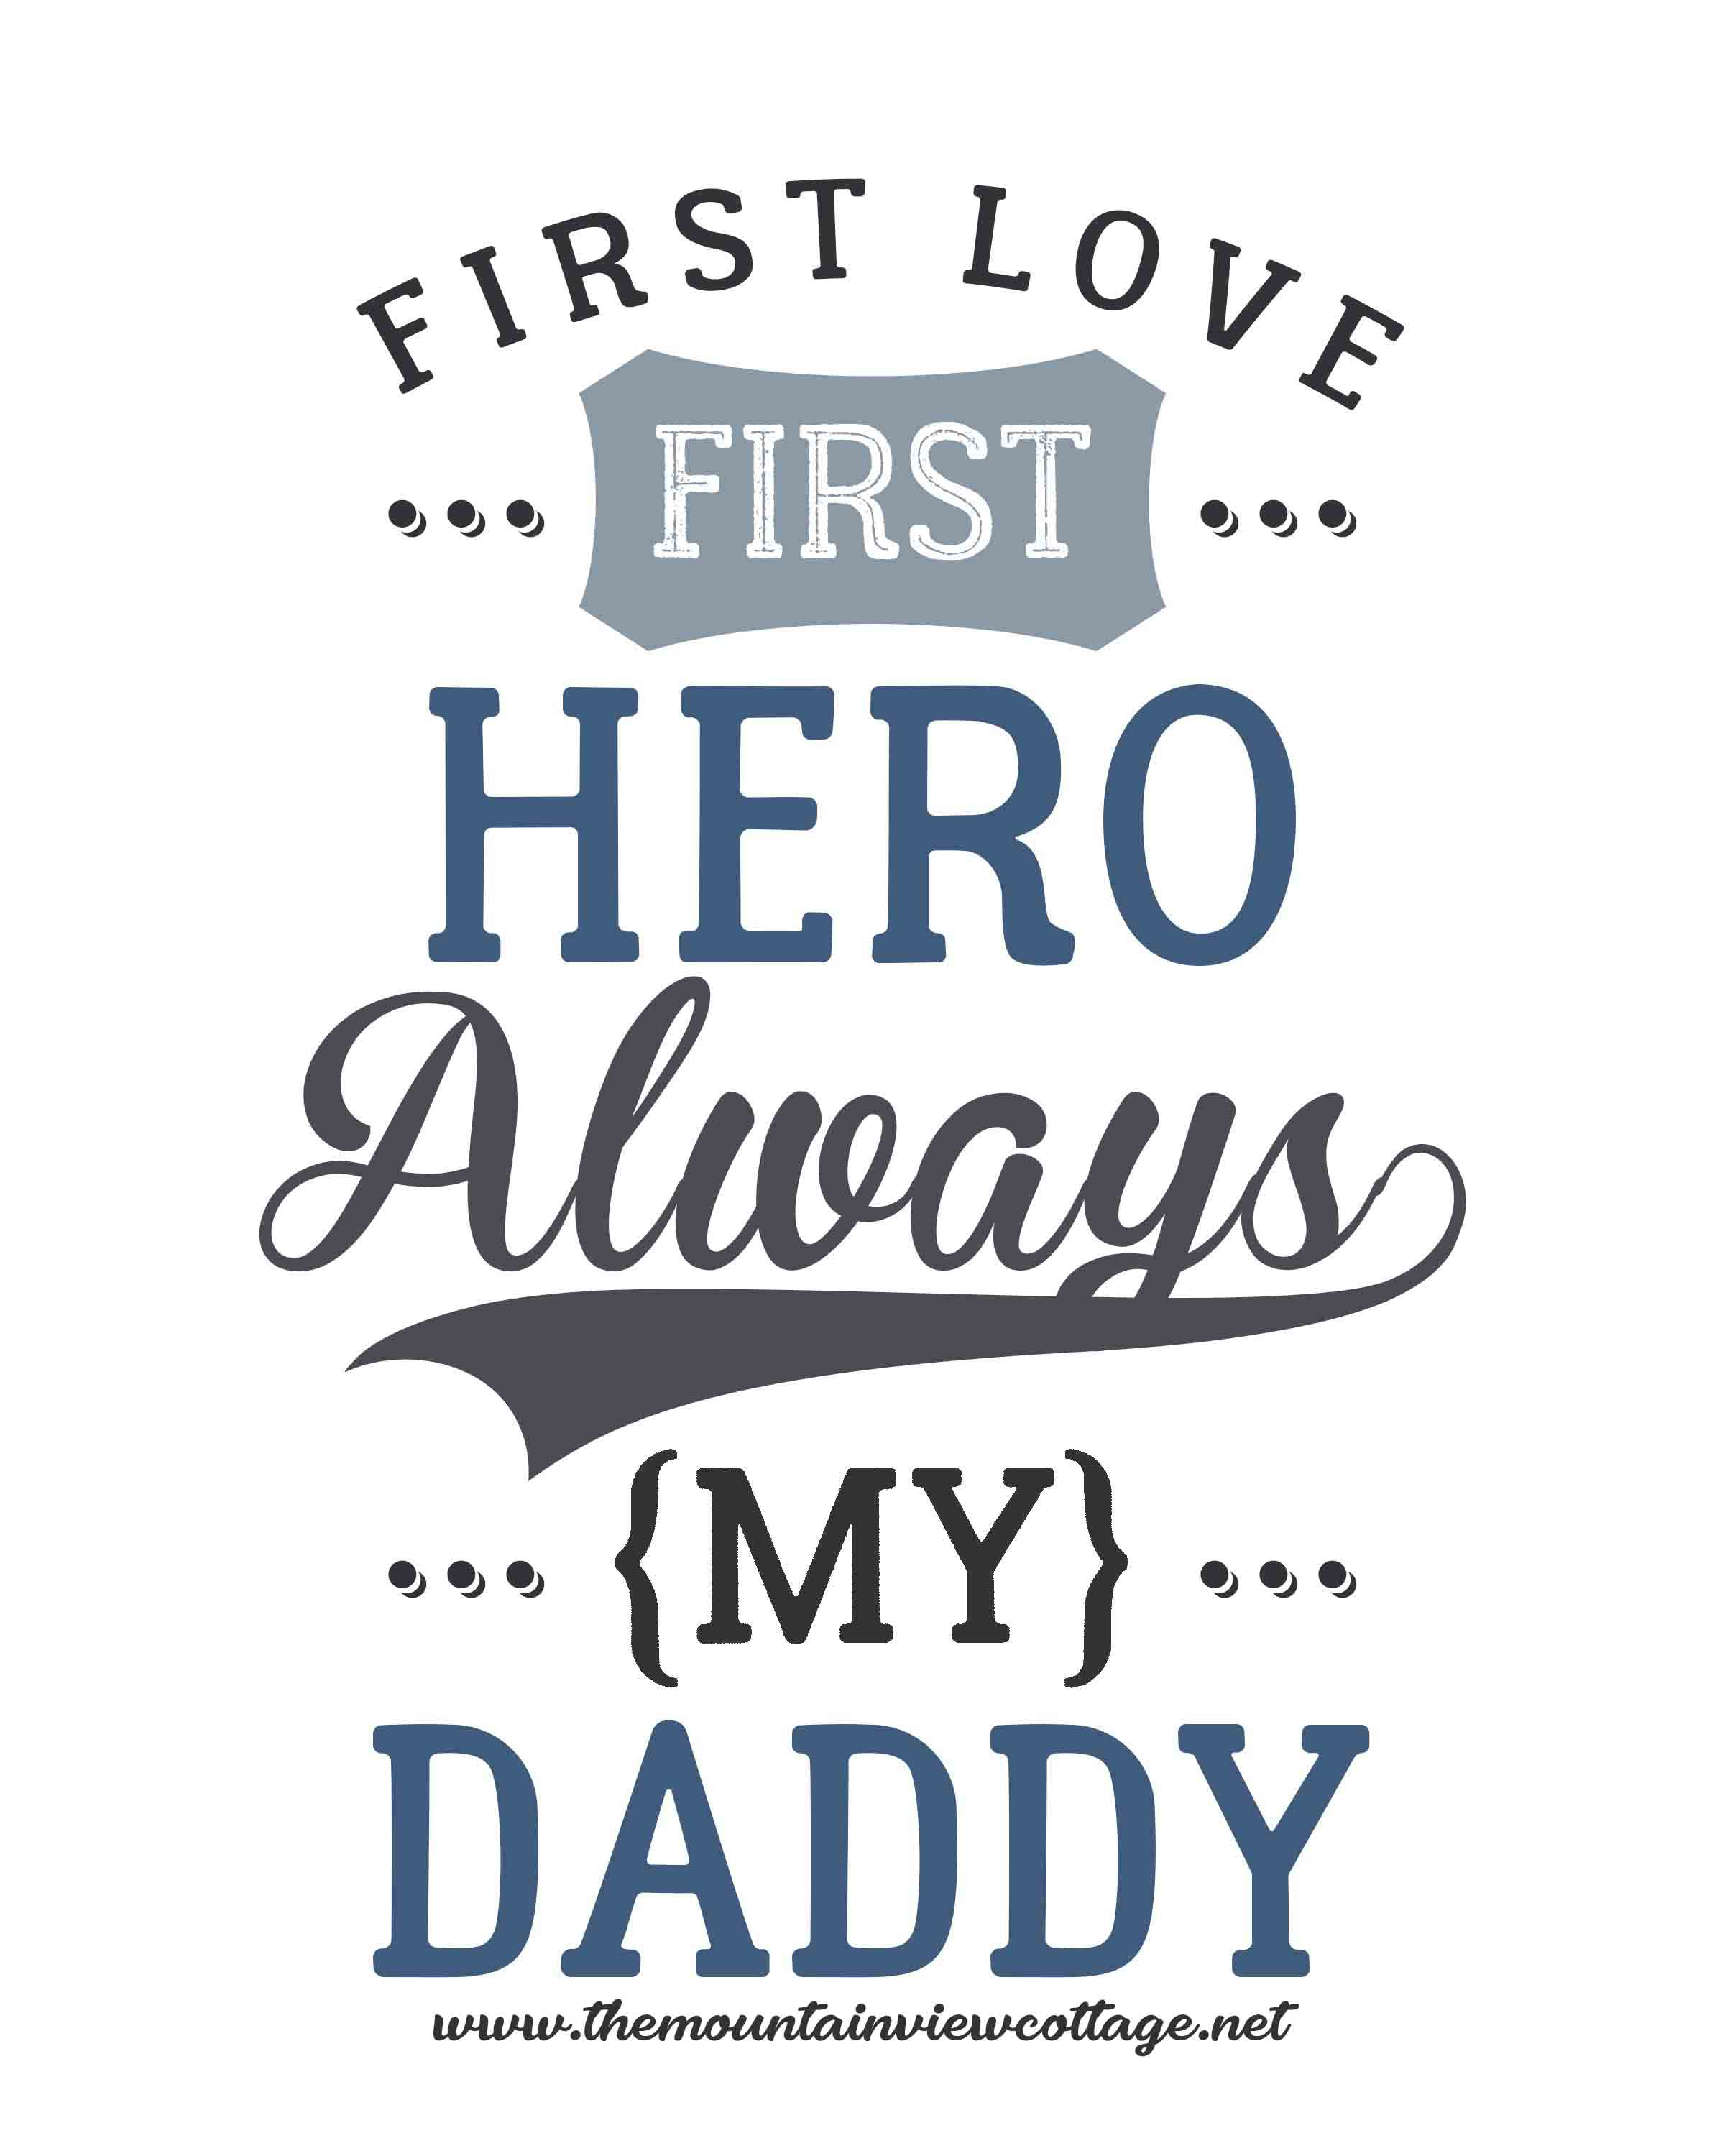 Dad quotes-Dad quotes from daughter-First love first hero always my Daddy